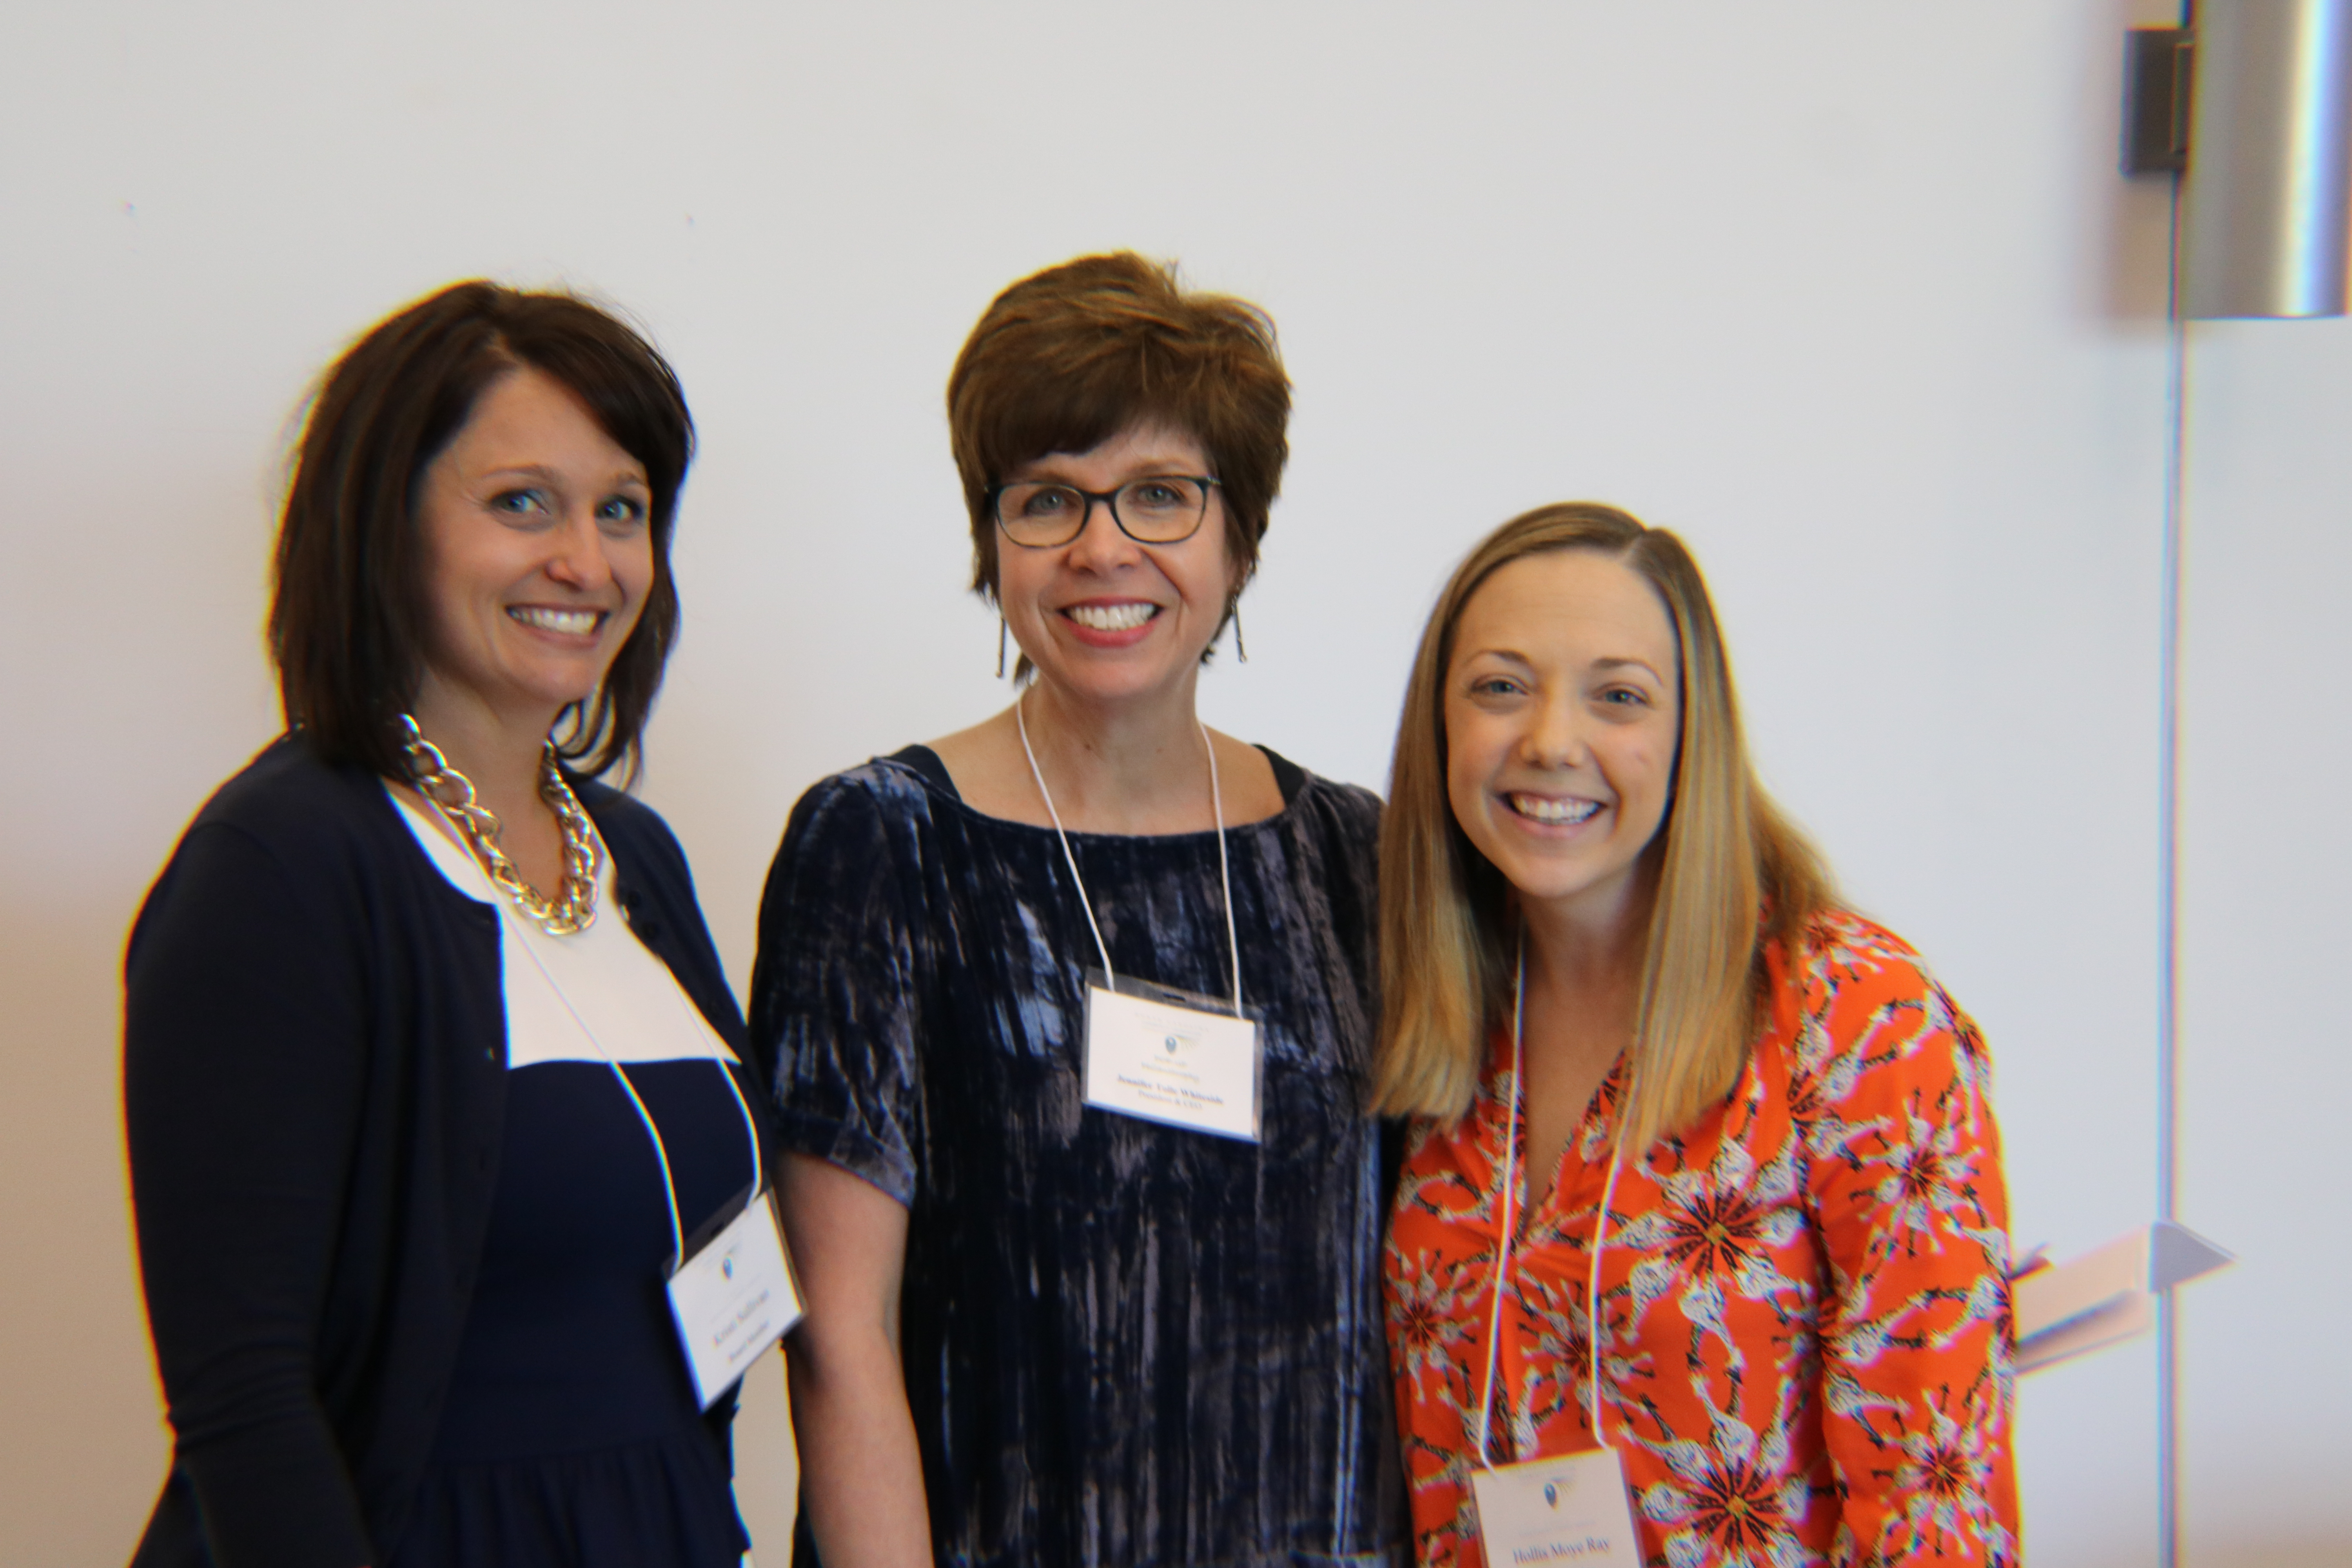 Hollis Moye Ray (right), NHCCF board member, poses for a photo at NCCF's Pop-Up Philanthropy with Kristi Sullivan (left), NHCCF board president, and Jennifer Tolle Whiteside, NCCF CEO and president.